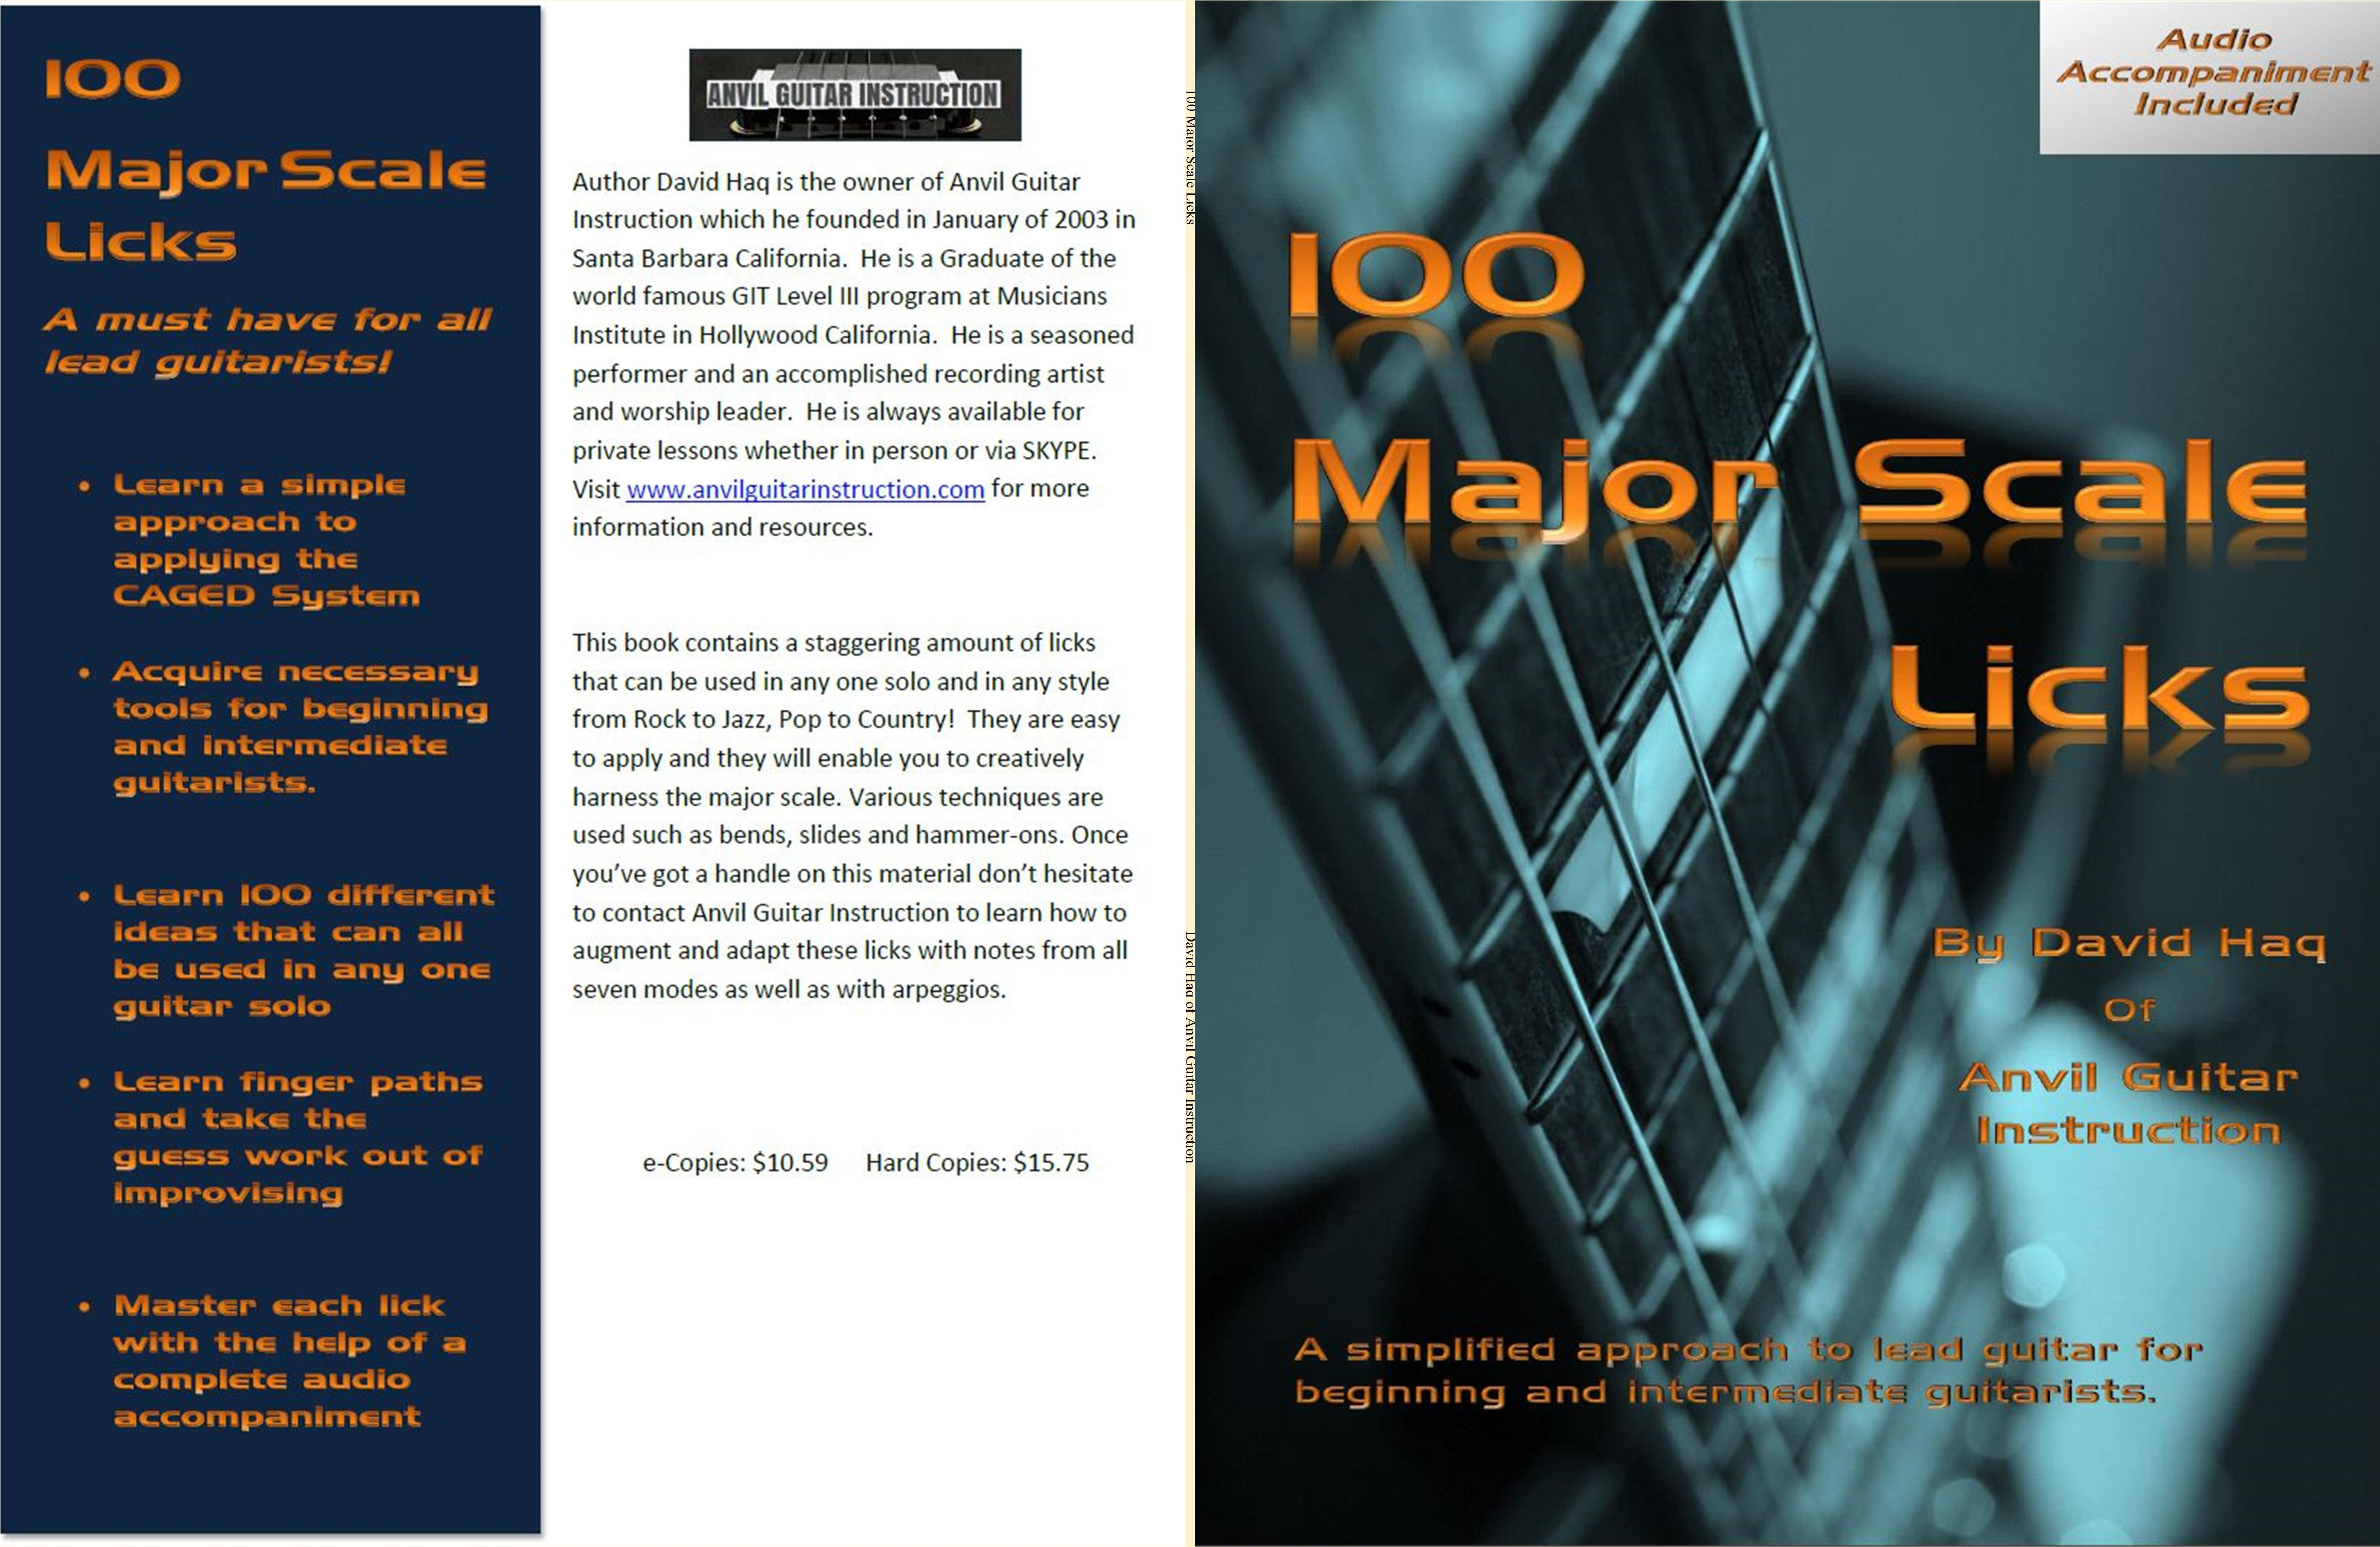 100 Major Scale Licks cover image